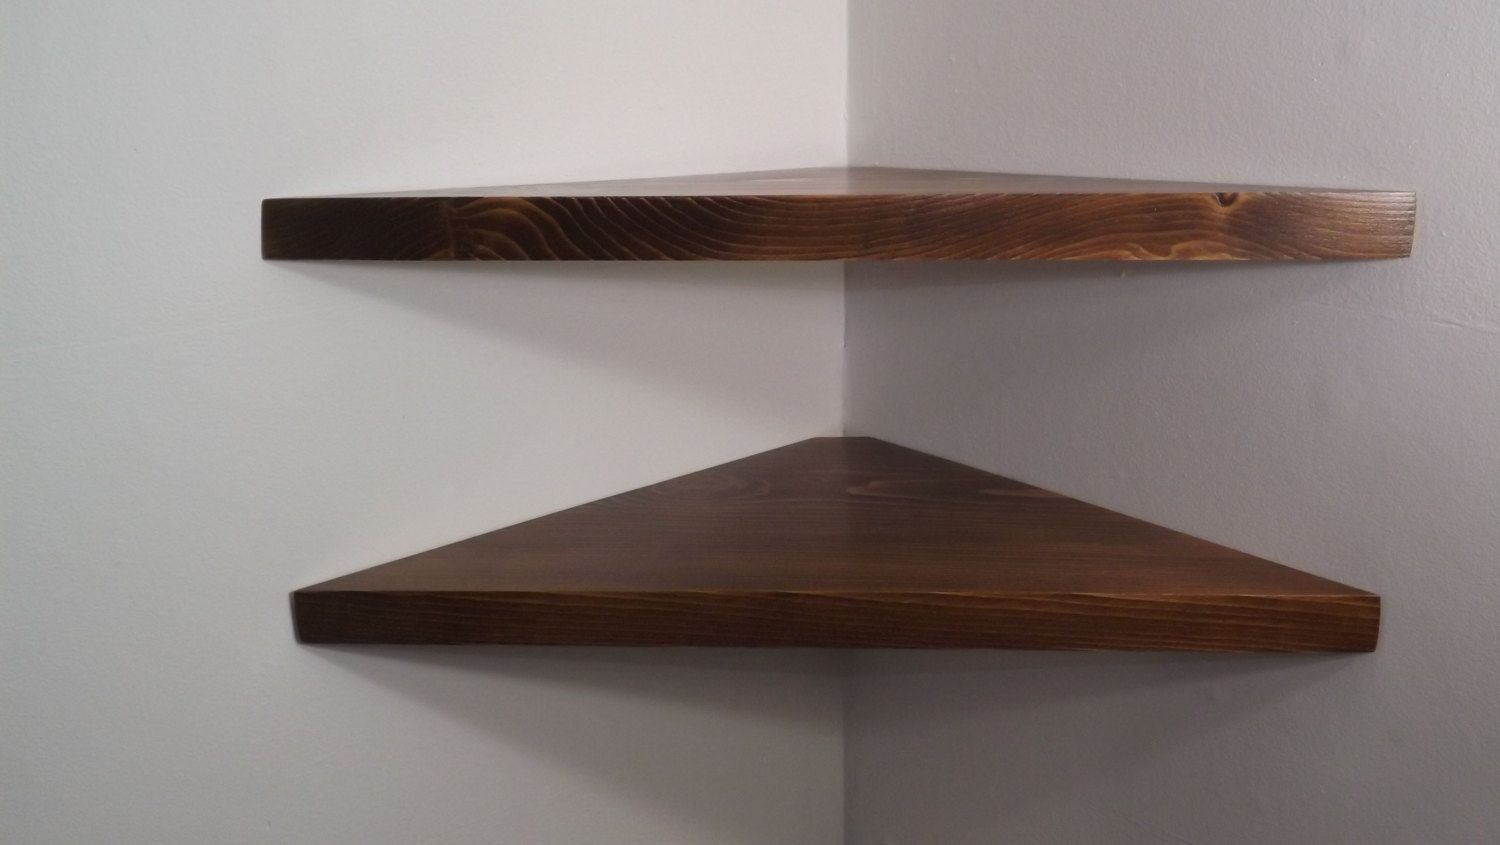 set inch floating corner shelves with dark walnut stain shelf handmade the usa bawoodworking etsy chunky bookshelf freestanding wood fireplace clear white ott bedroom cube